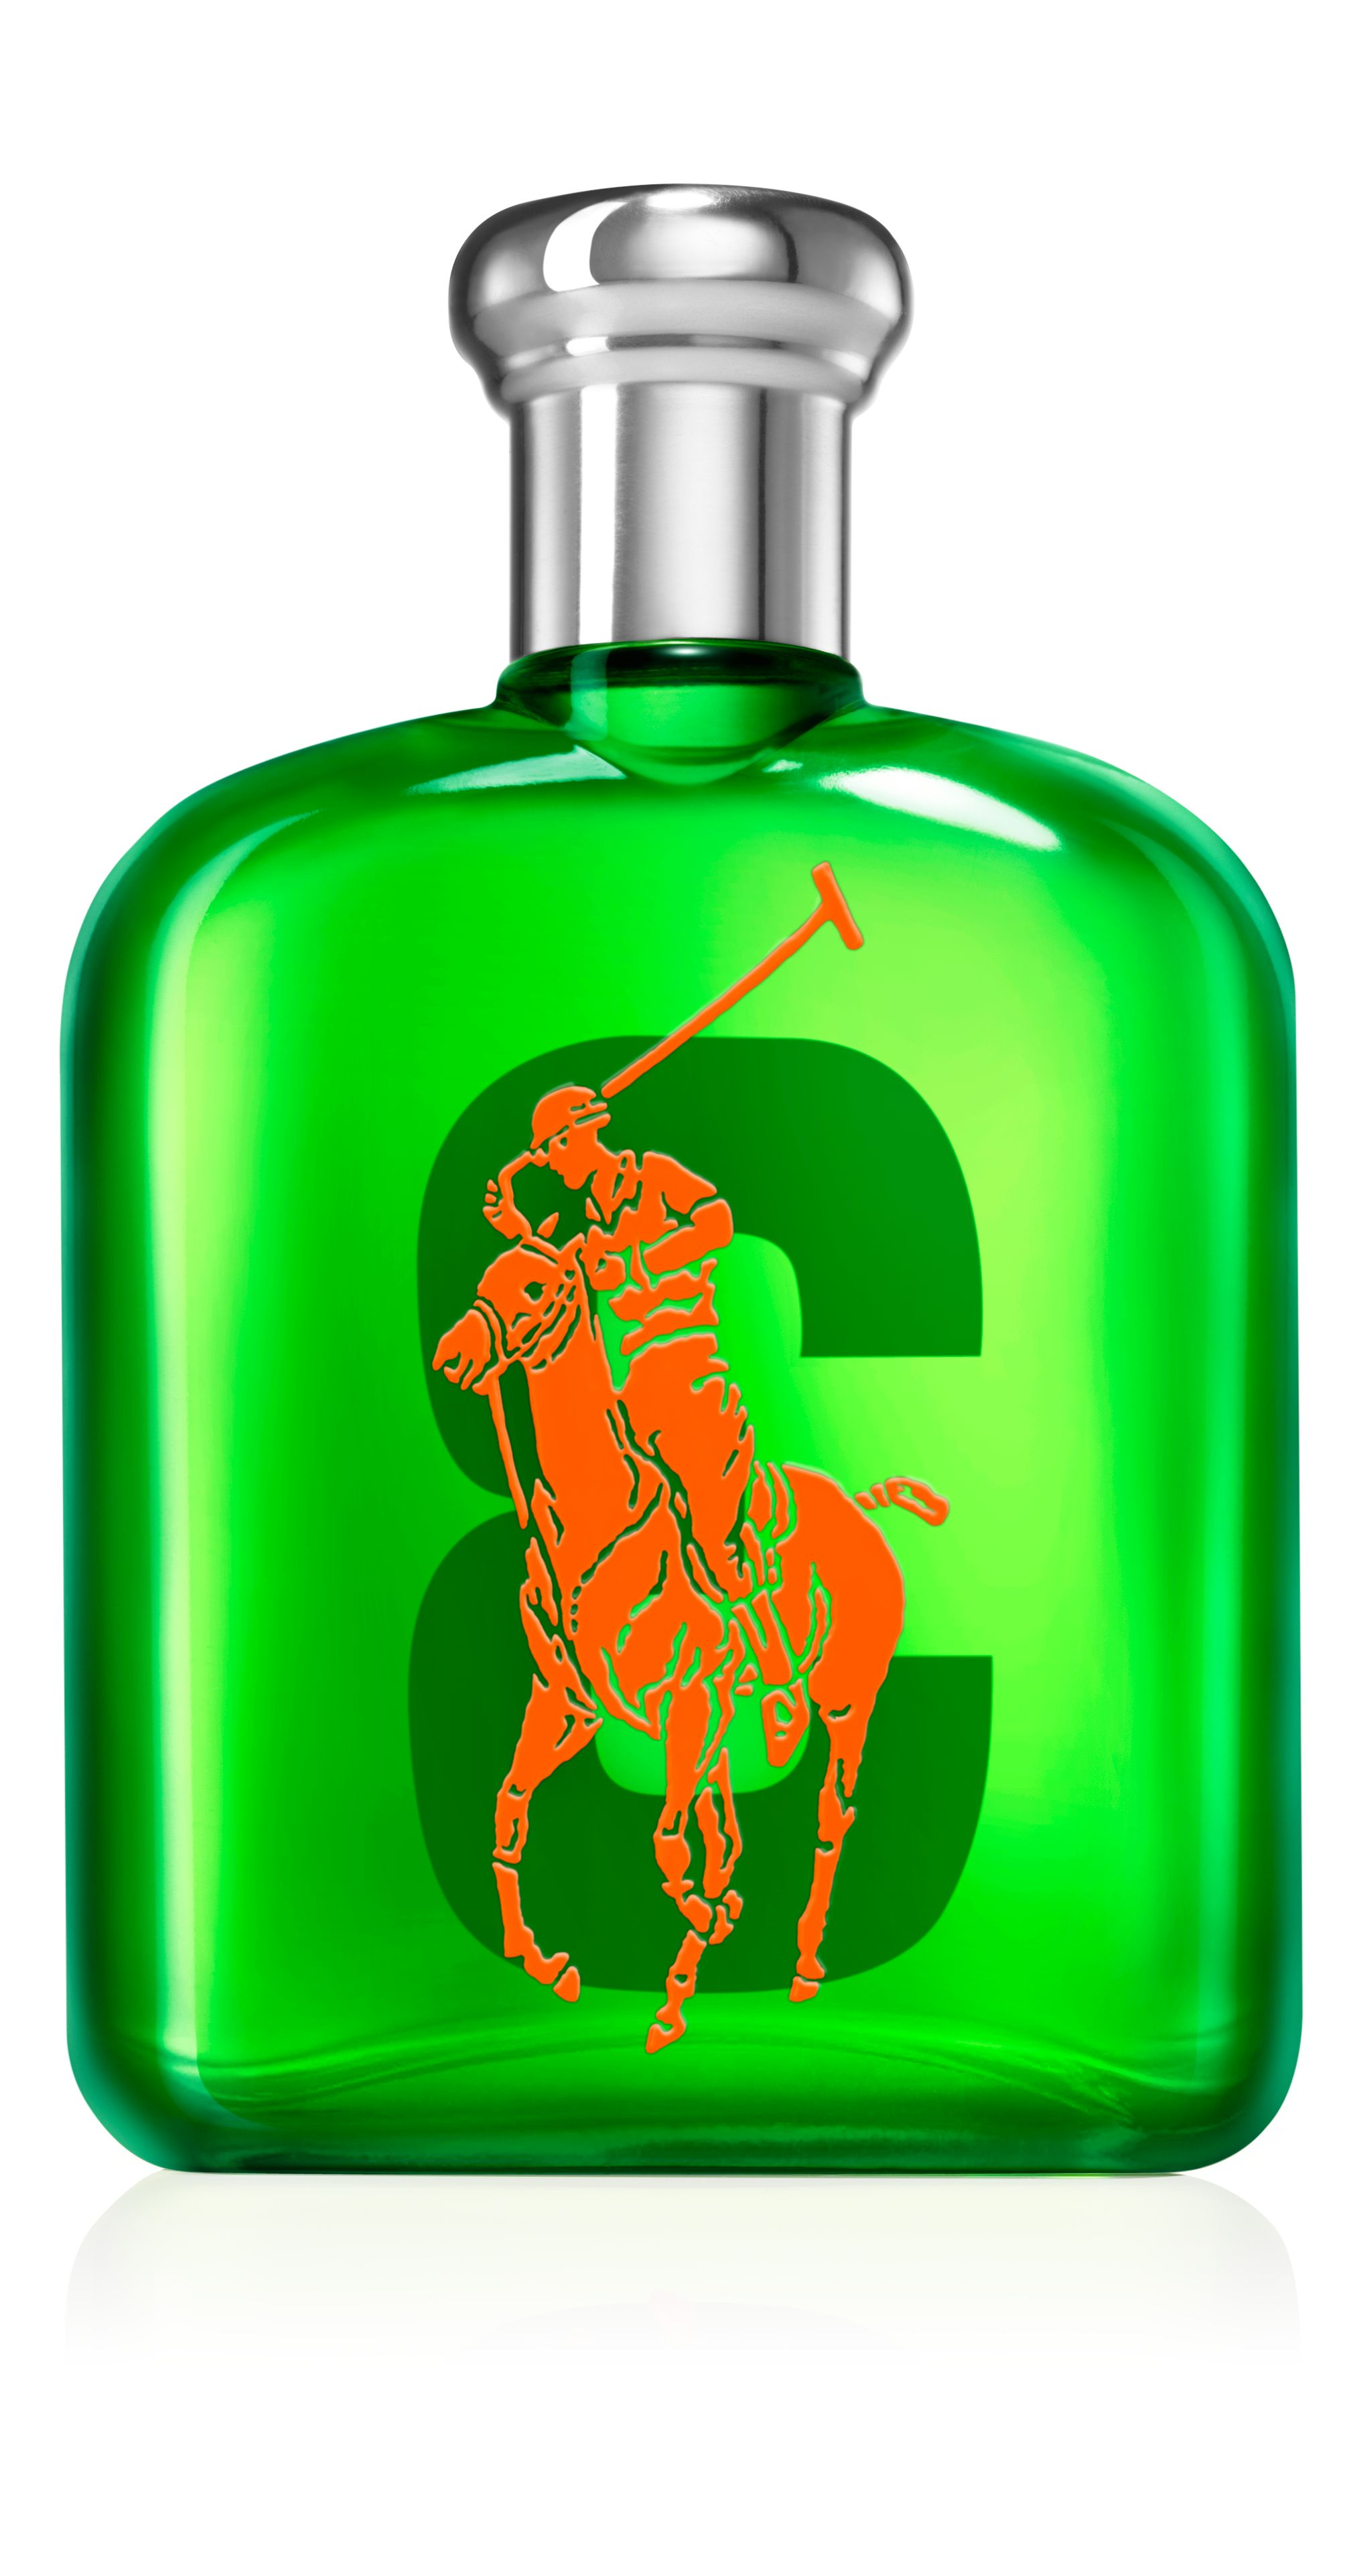 Big pony No. 3 eau de toilette 75ml